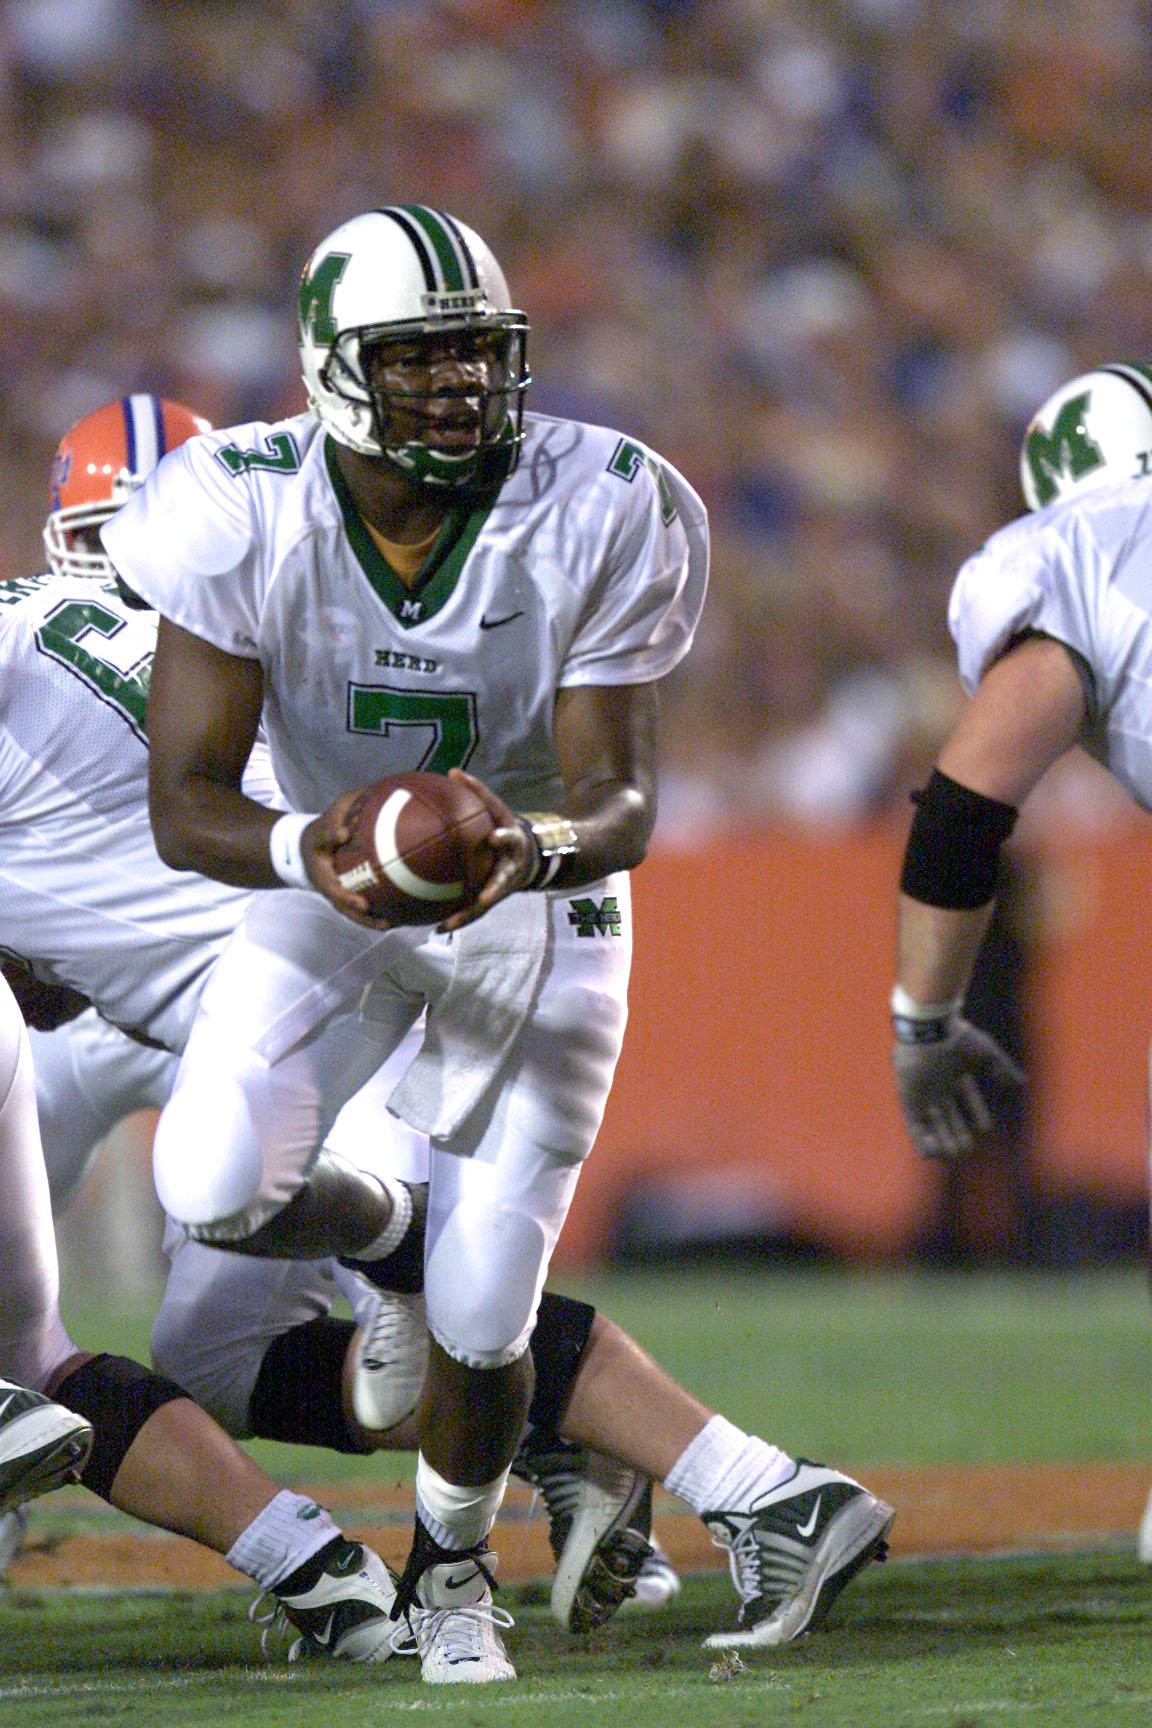 1 Sep 2001: Byron Leftwich of the Marshall Herd runs with the ball during the game against the Florida Gators at Florida Field in Gainesville, Florida. Florida won 49-14. DIGITAL IMAGE. Mandatory Credit: Eliot Schechter/Allsport